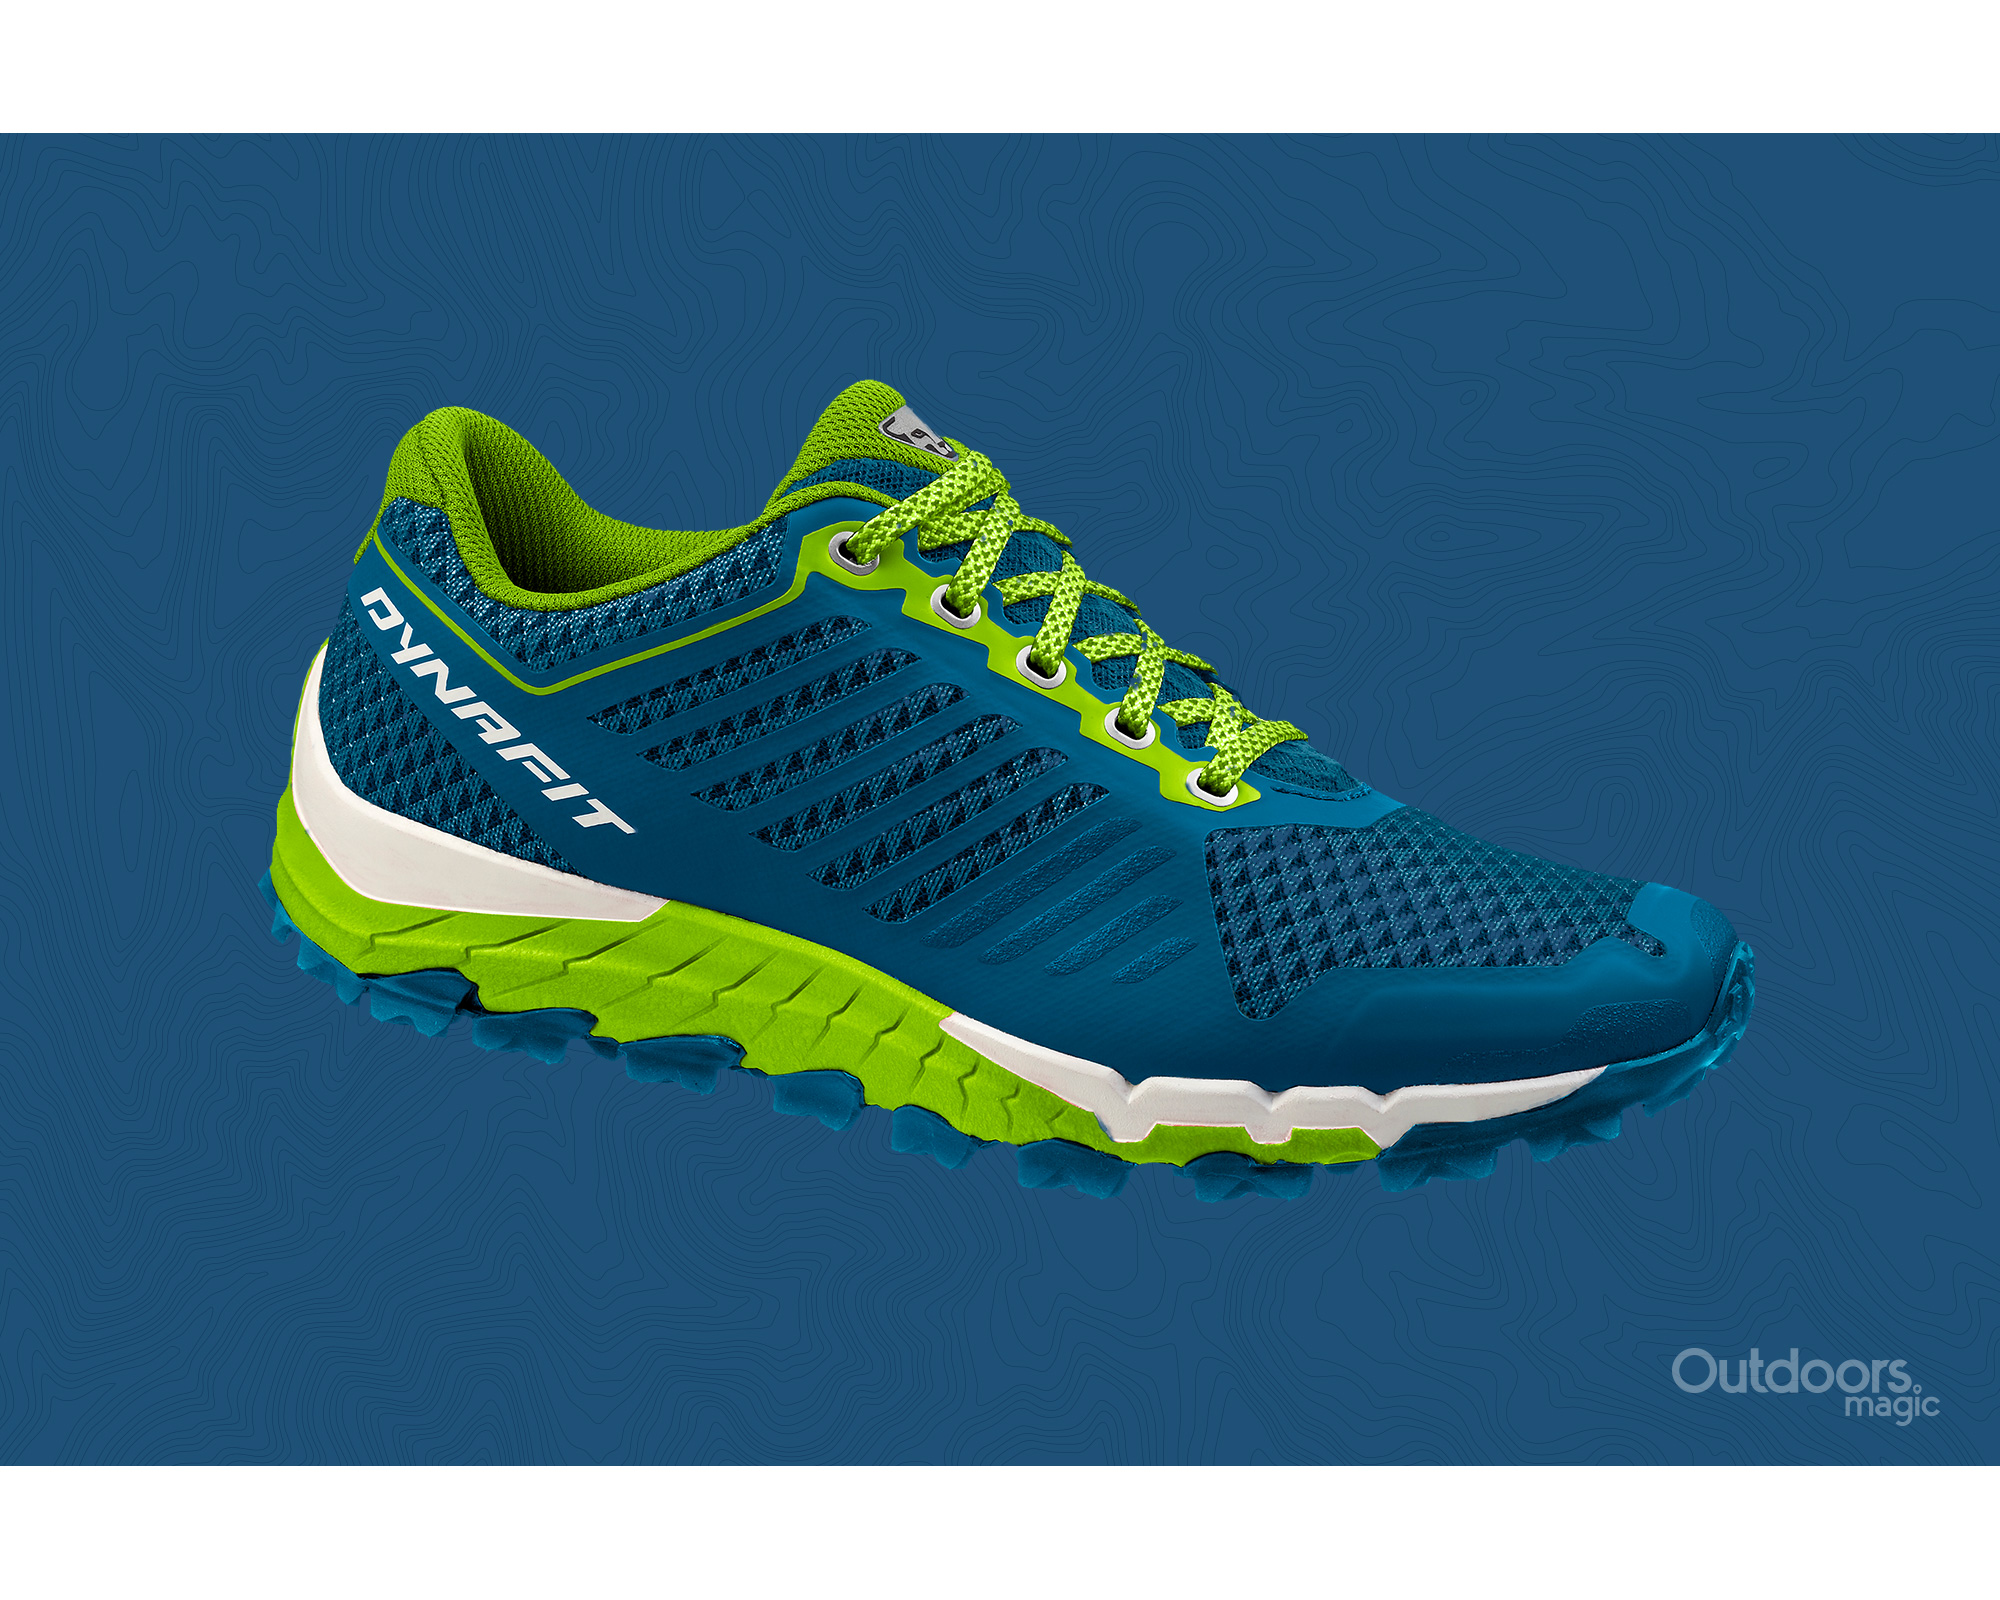 Best Trail Running Shoes Reviewed 2019 | Top 8 Out